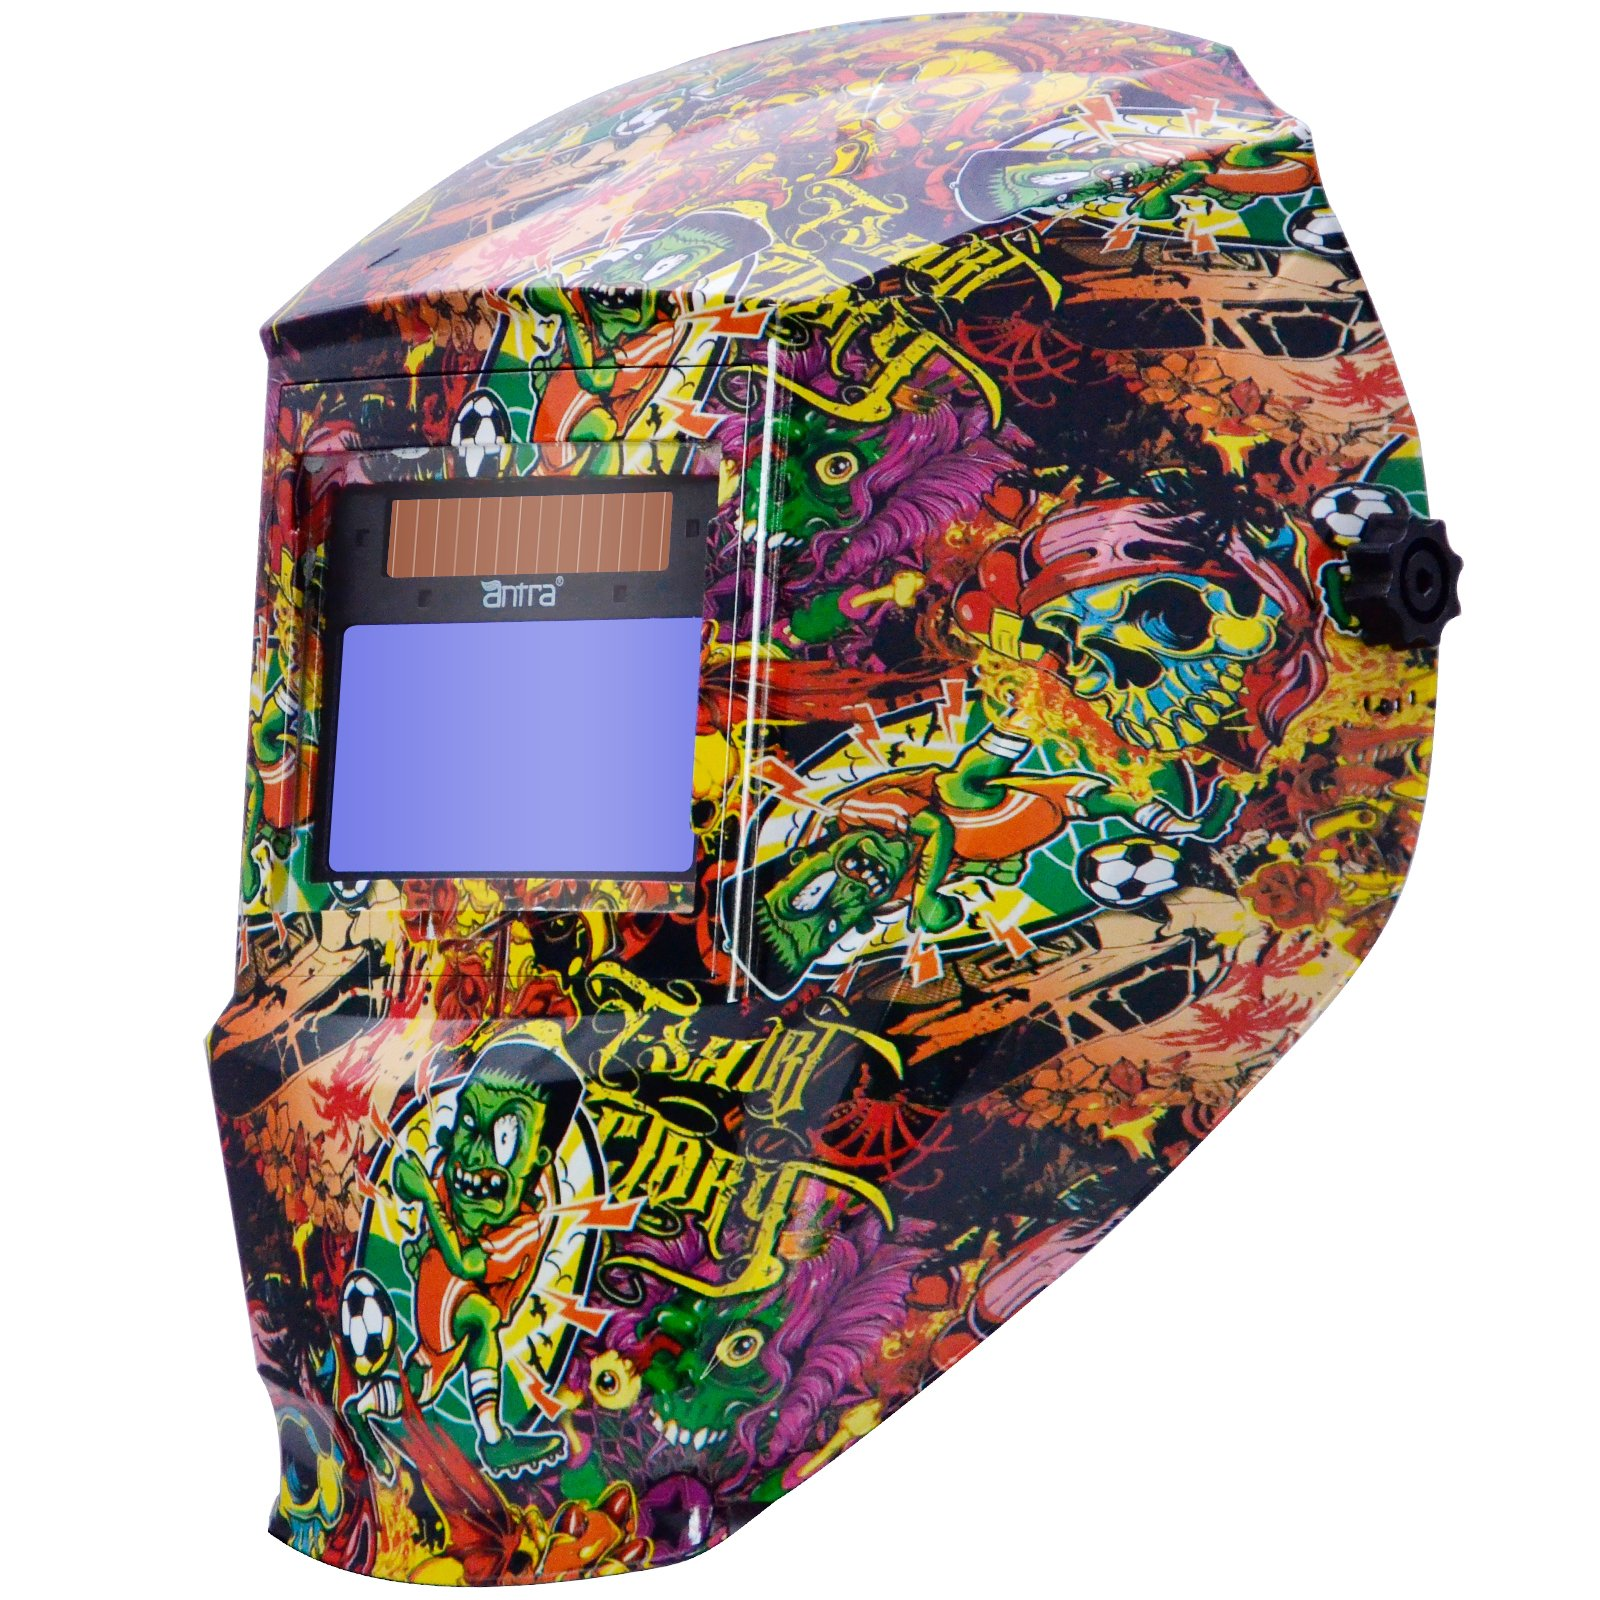 Antra AH6-330-6325 Digital Controlled Solar Power Auto Darkening Welding Helmet with ANTFI X30 Shade 5-8/9-13 with Grinding Feature Extra Lens Covers Good for TIG MIG MMA Plasma by Antra